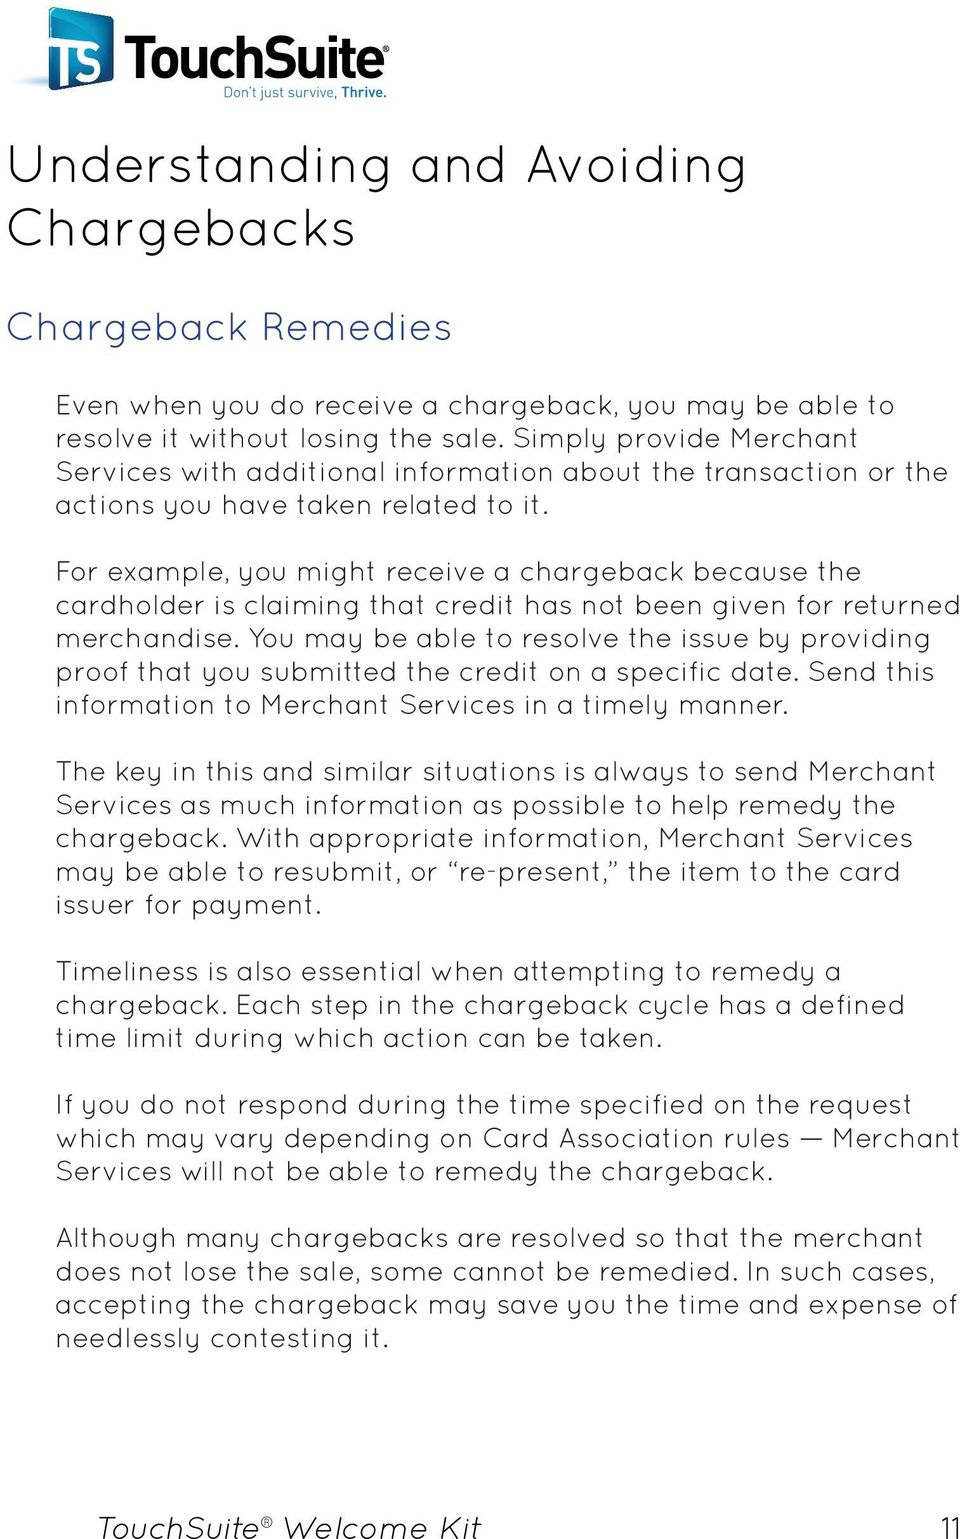 For example, you might receive a chargeback because the cardholder is claiming that credit has not been given for returned merchandise.